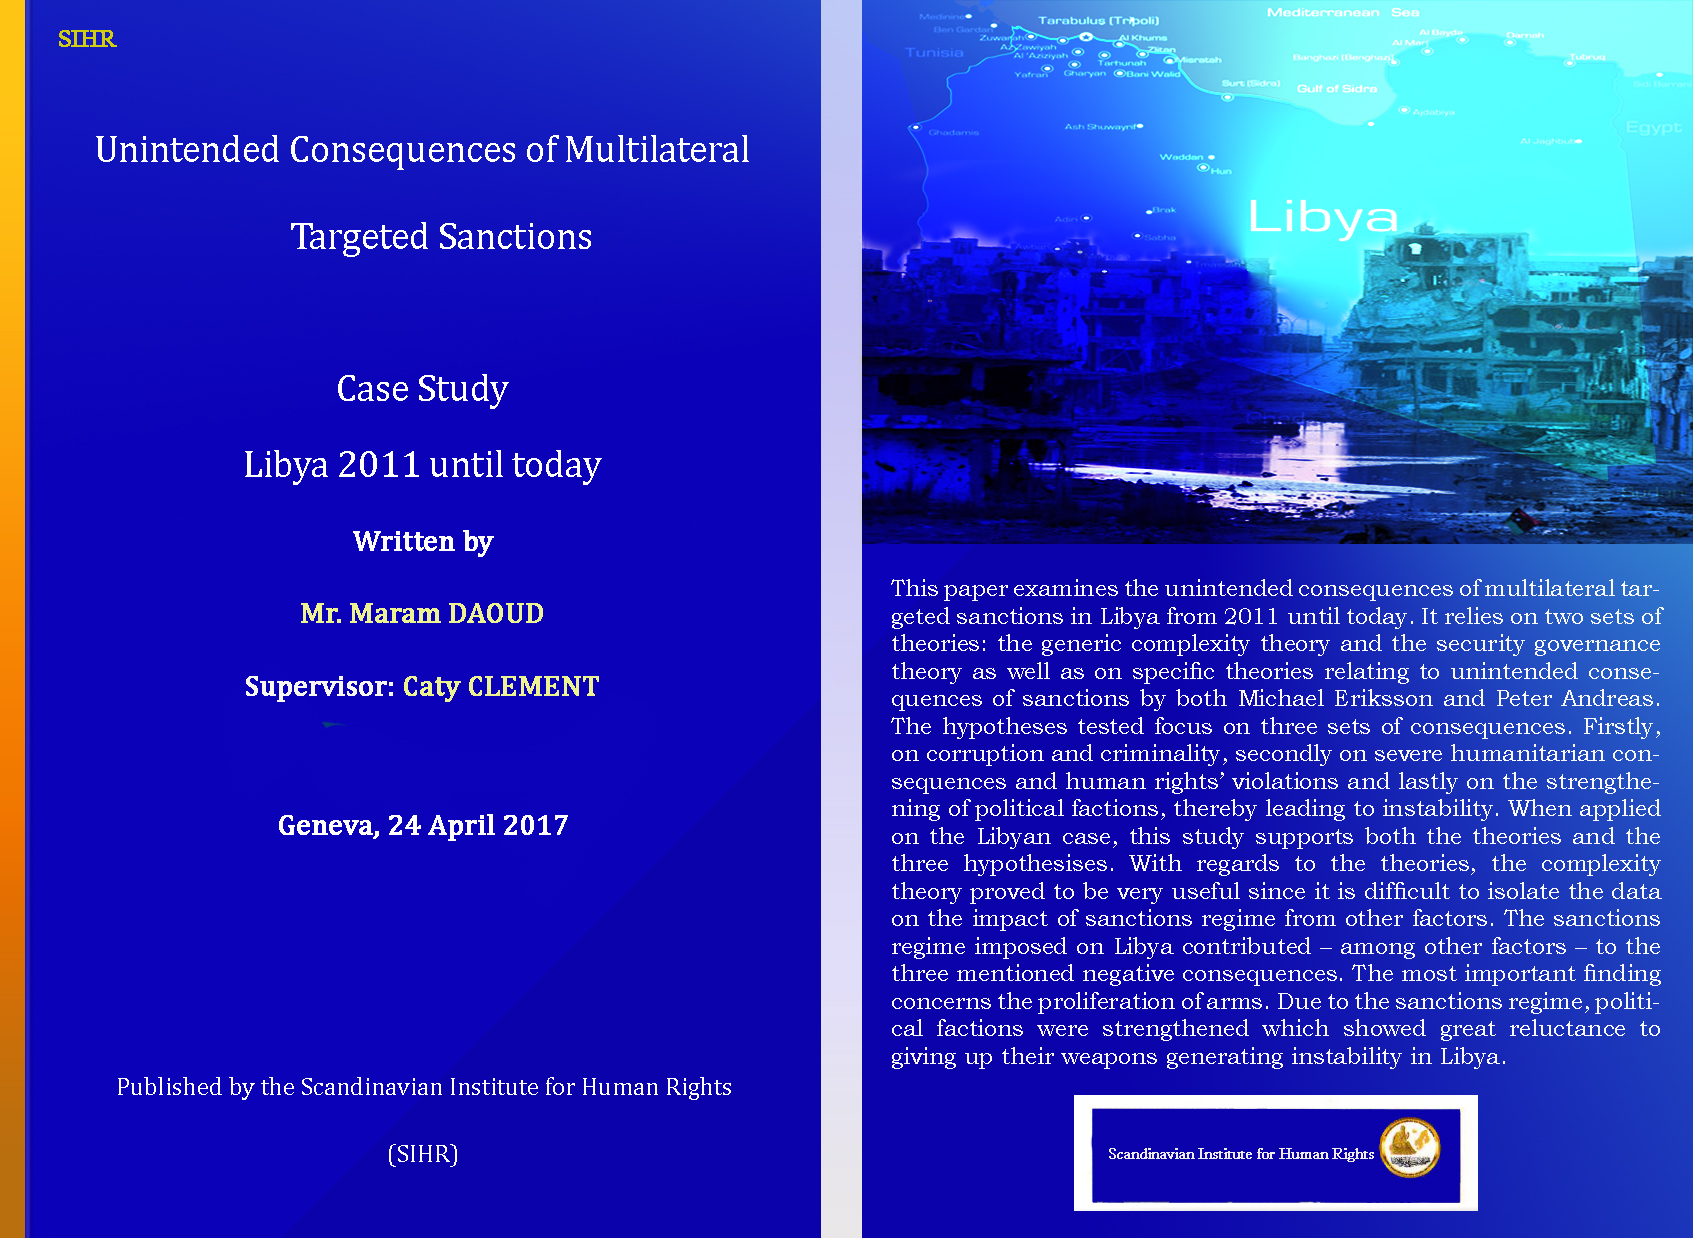 Unintended consequences of multilateral targeted sanctions: libya 2011 until today